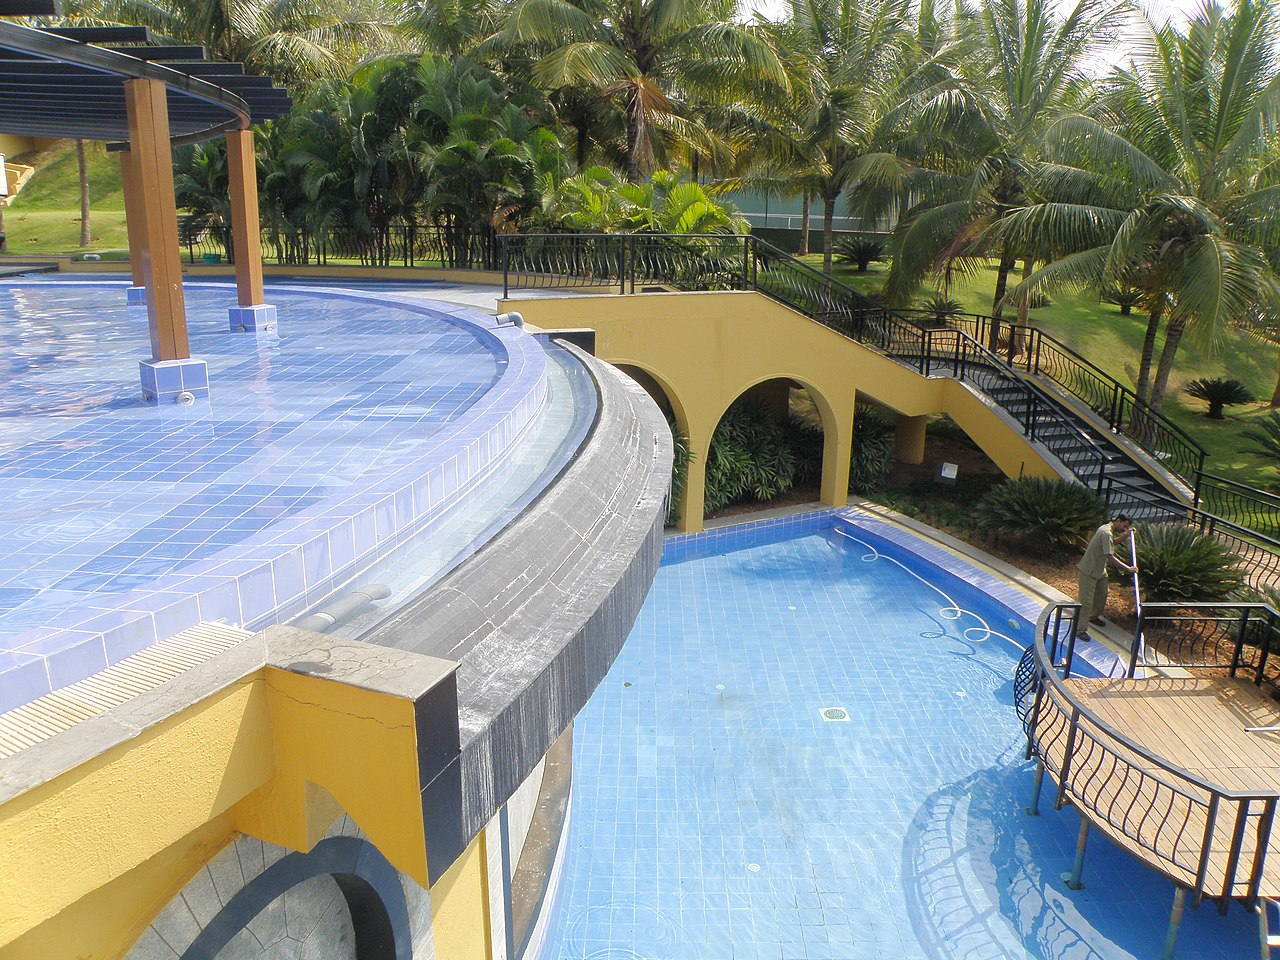 File:Infinity edge of the swimming pool in Infosys Mysore.JPG